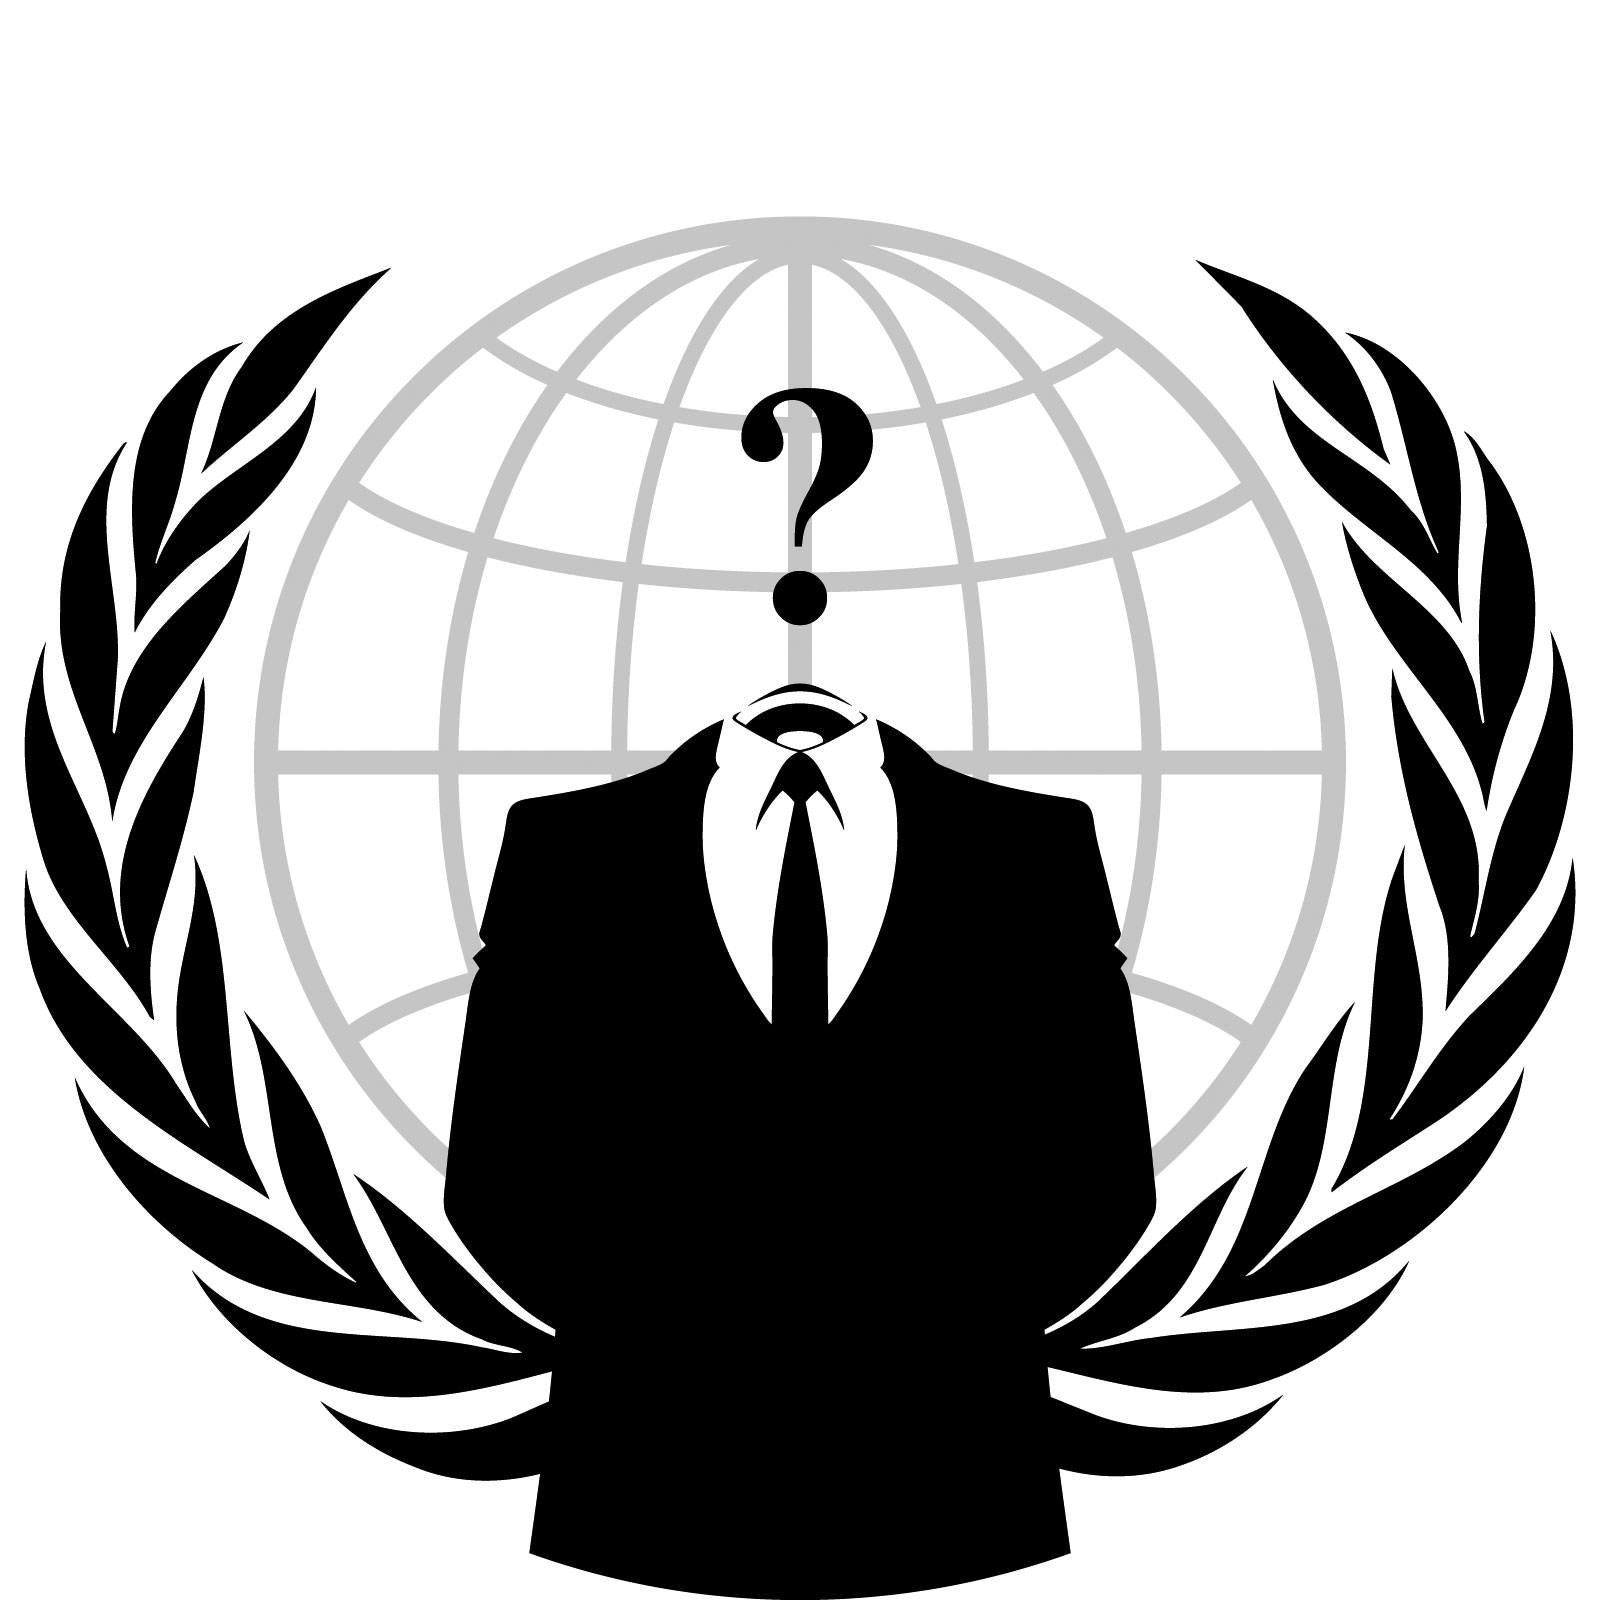 A Libertarian Analysis of the Anonymous 'Open Letter to the Citizens of the United States of America'